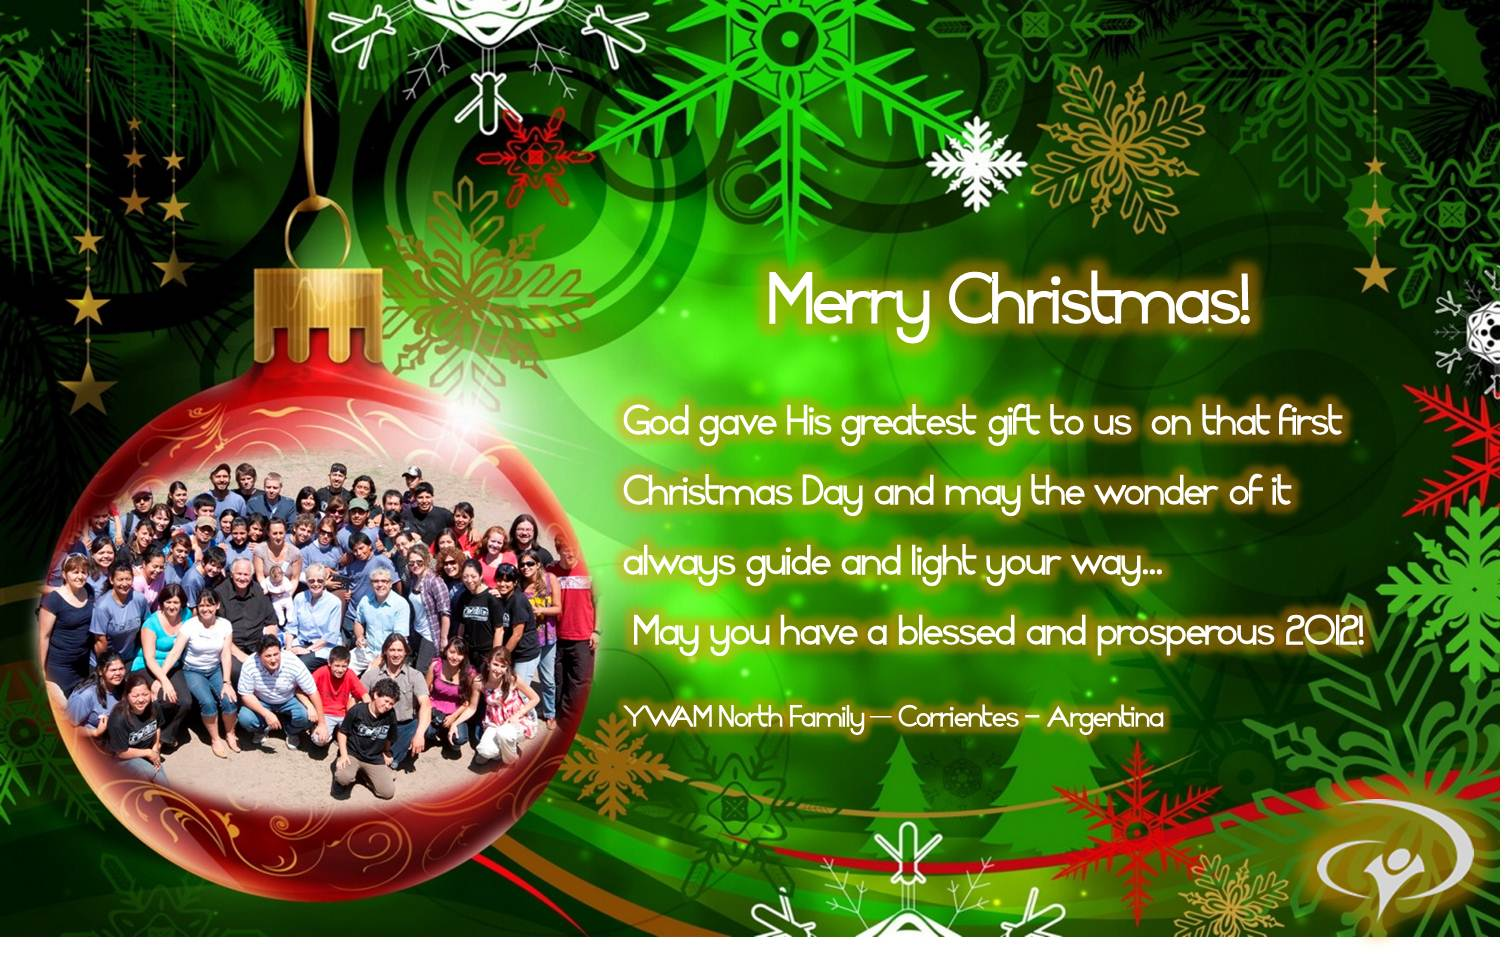 Christmas greetings pictures time to celebrate christmas christmas greeting messages or pictures m4hsunfo Images